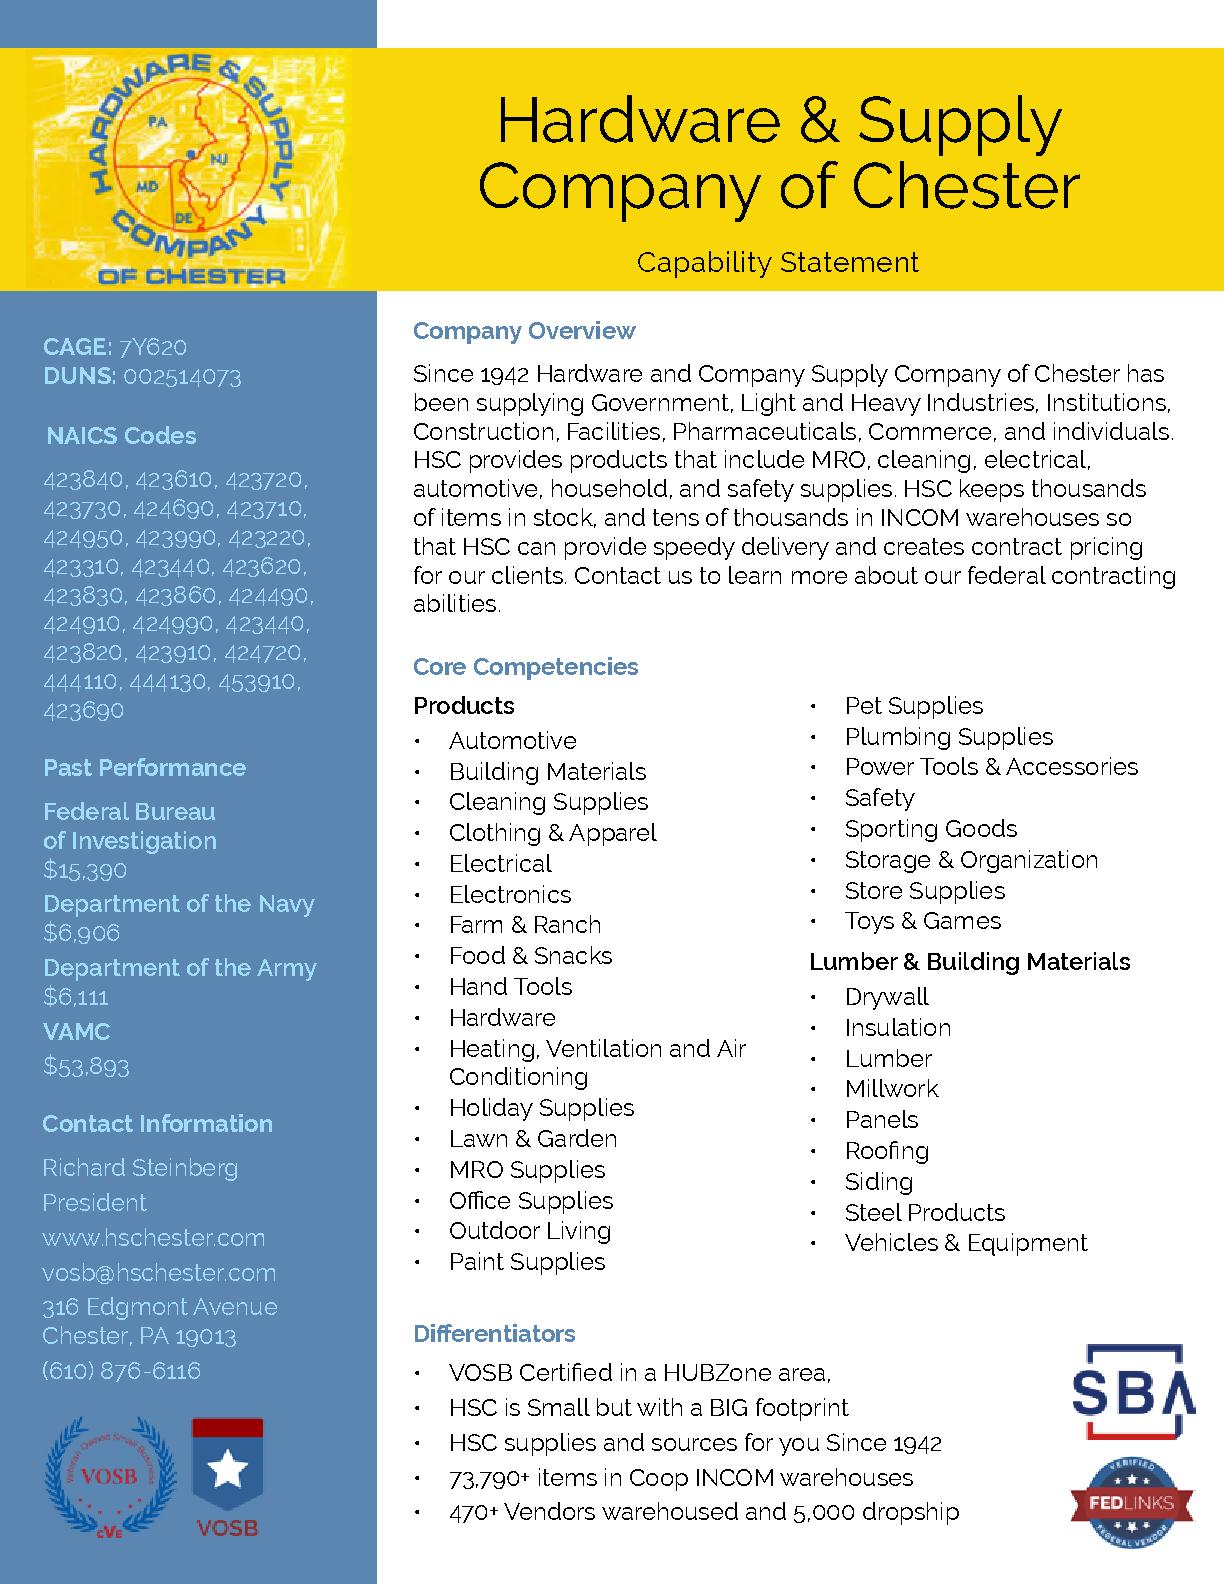 Hardware and supply company of chester capability statement